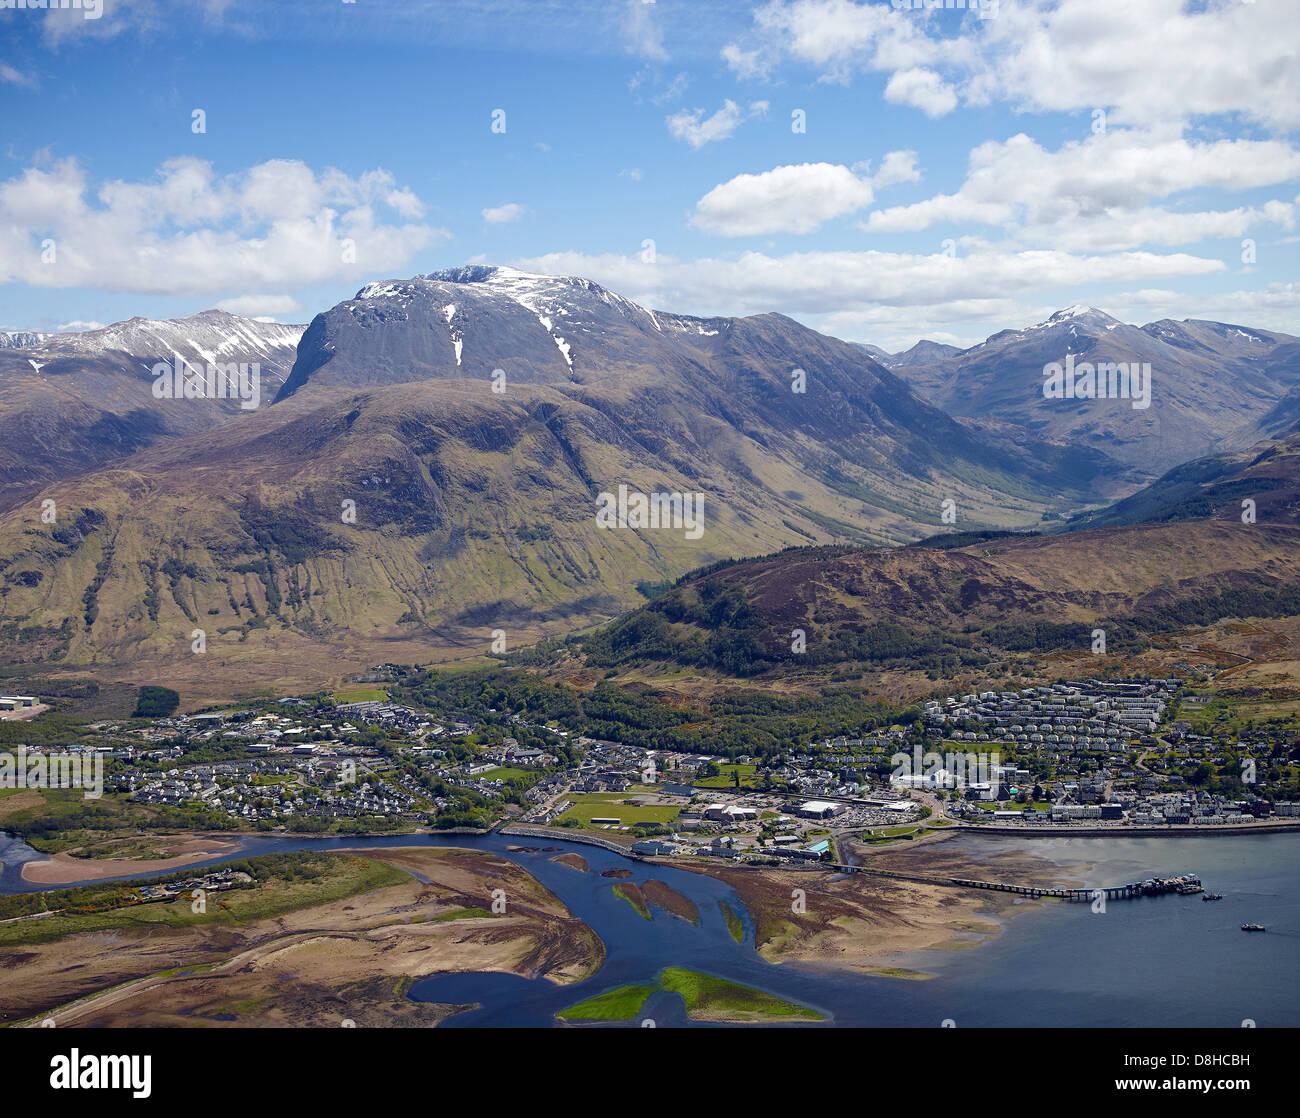 Ben Nevis and Fort William from the air, North West Highland Scotland Stock Photo